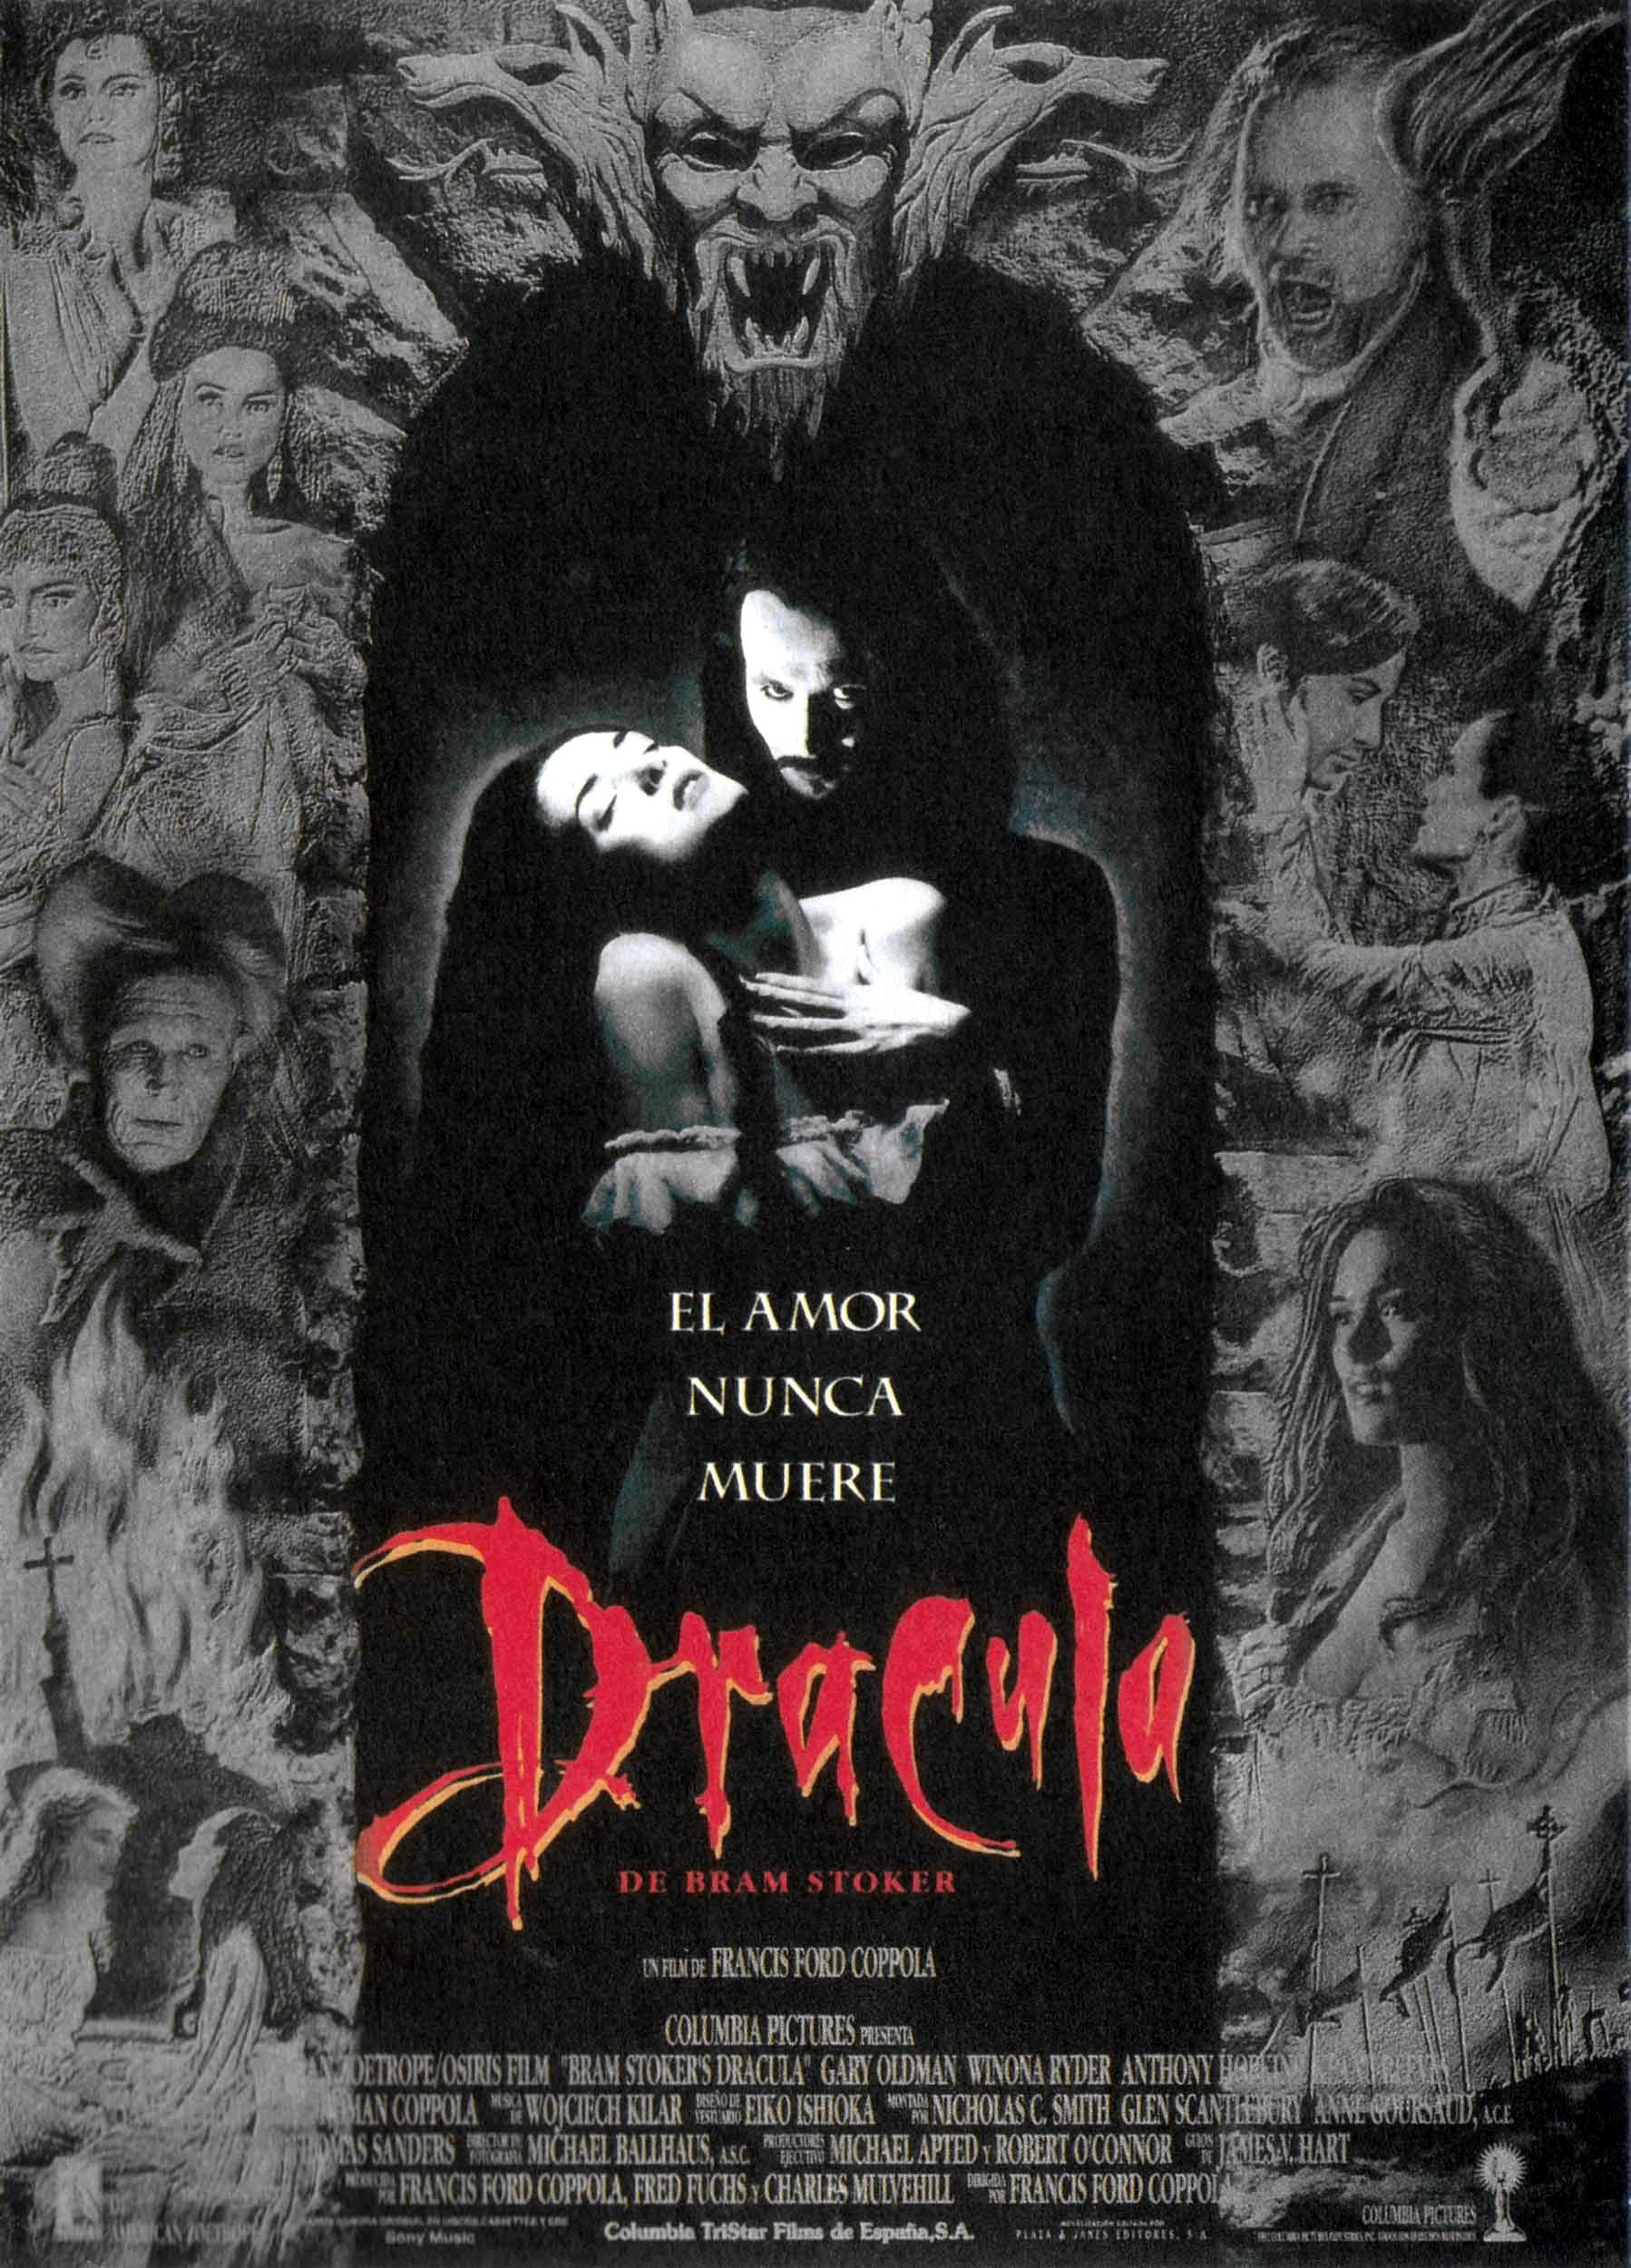 an analysis of bram stokers dracula Dracula is an 1897 gothic horror novel by irish author bram stokerit introduced count dracula, and established many conventions of subsequent vampire fantasy the novel tells the story of dracula's attempt to move from transylvania to england so that he may find new blood and spread the undead curse, and of the battle between dracula and a small group of men and a woman led by professor.